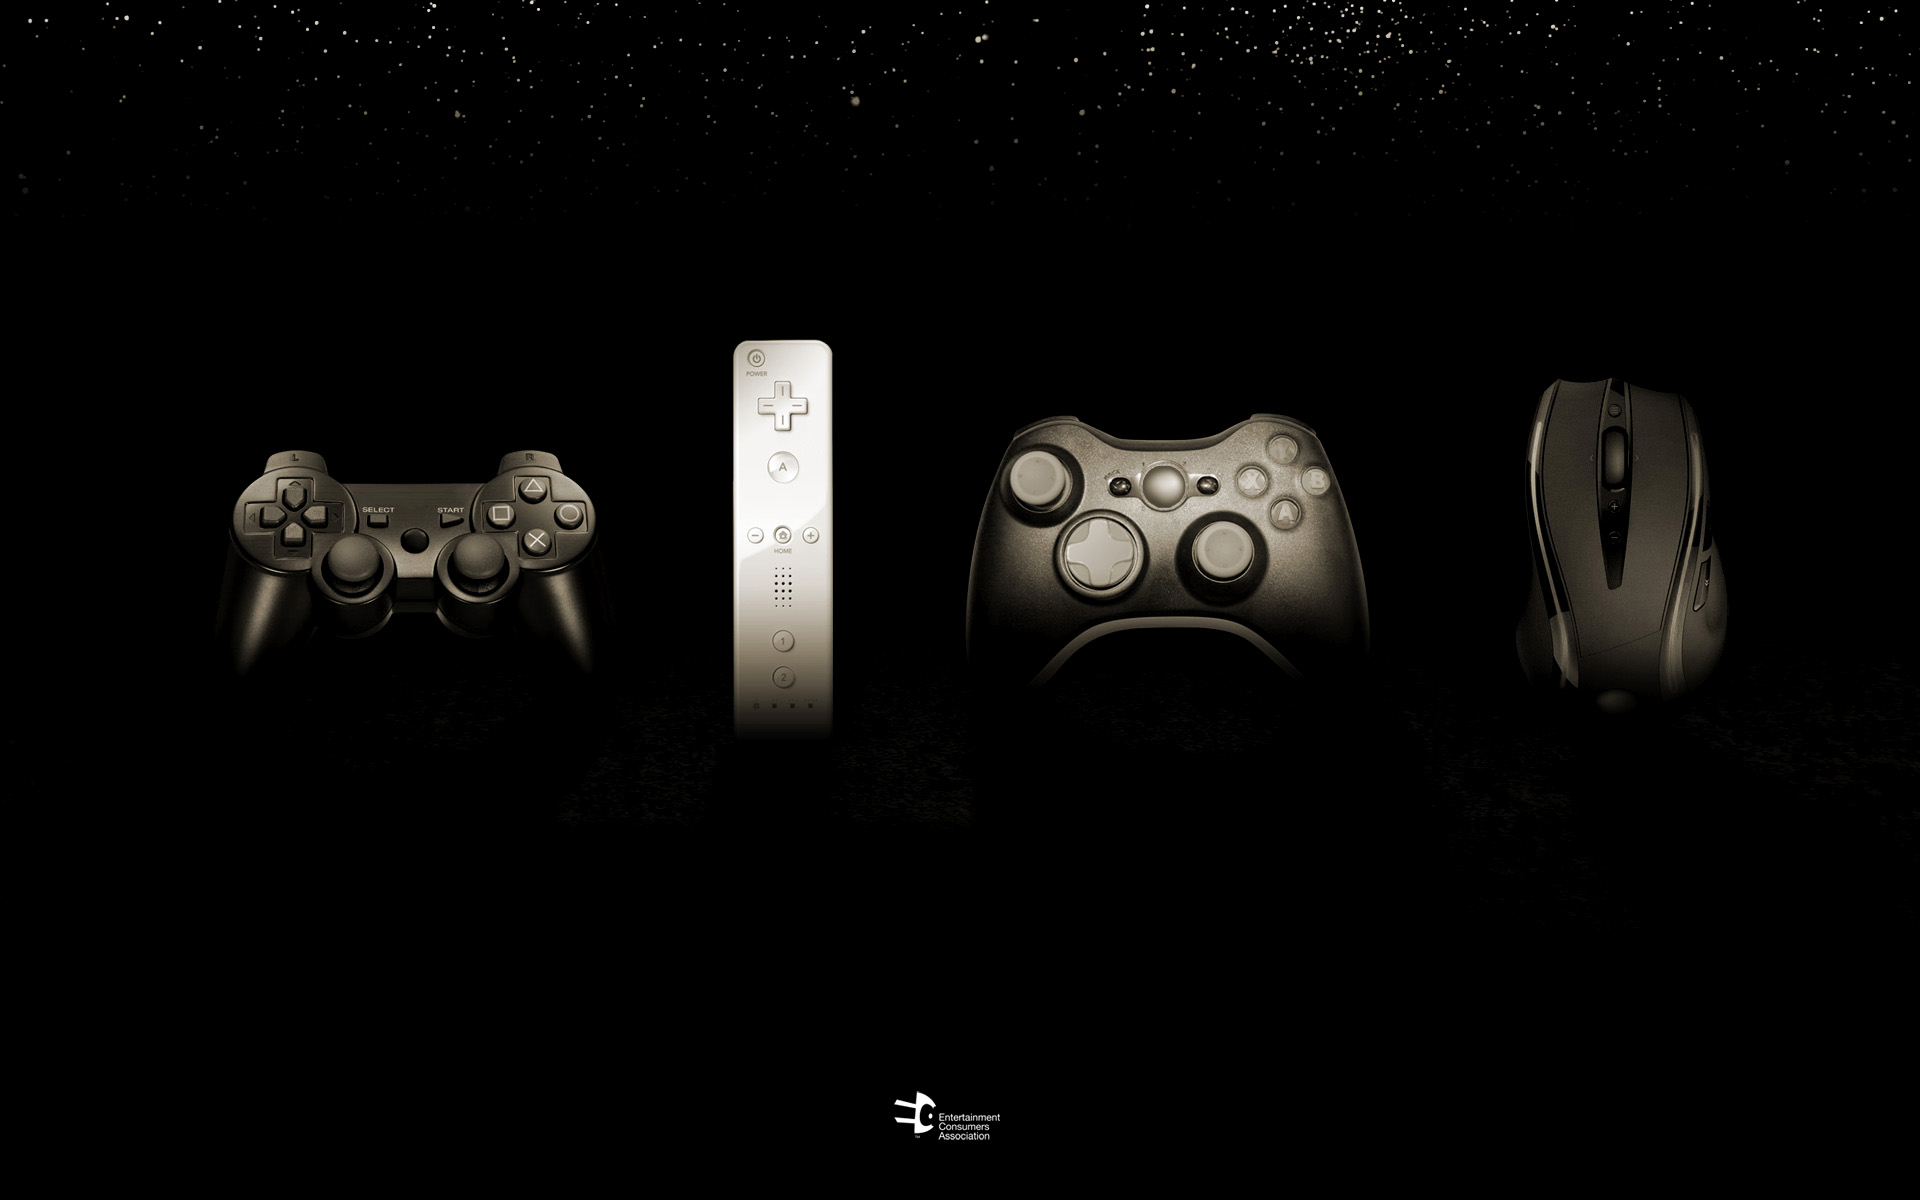 Gamer Thug Controller Hd Wallpapers: Backgrounds - Wallpaper Abyss